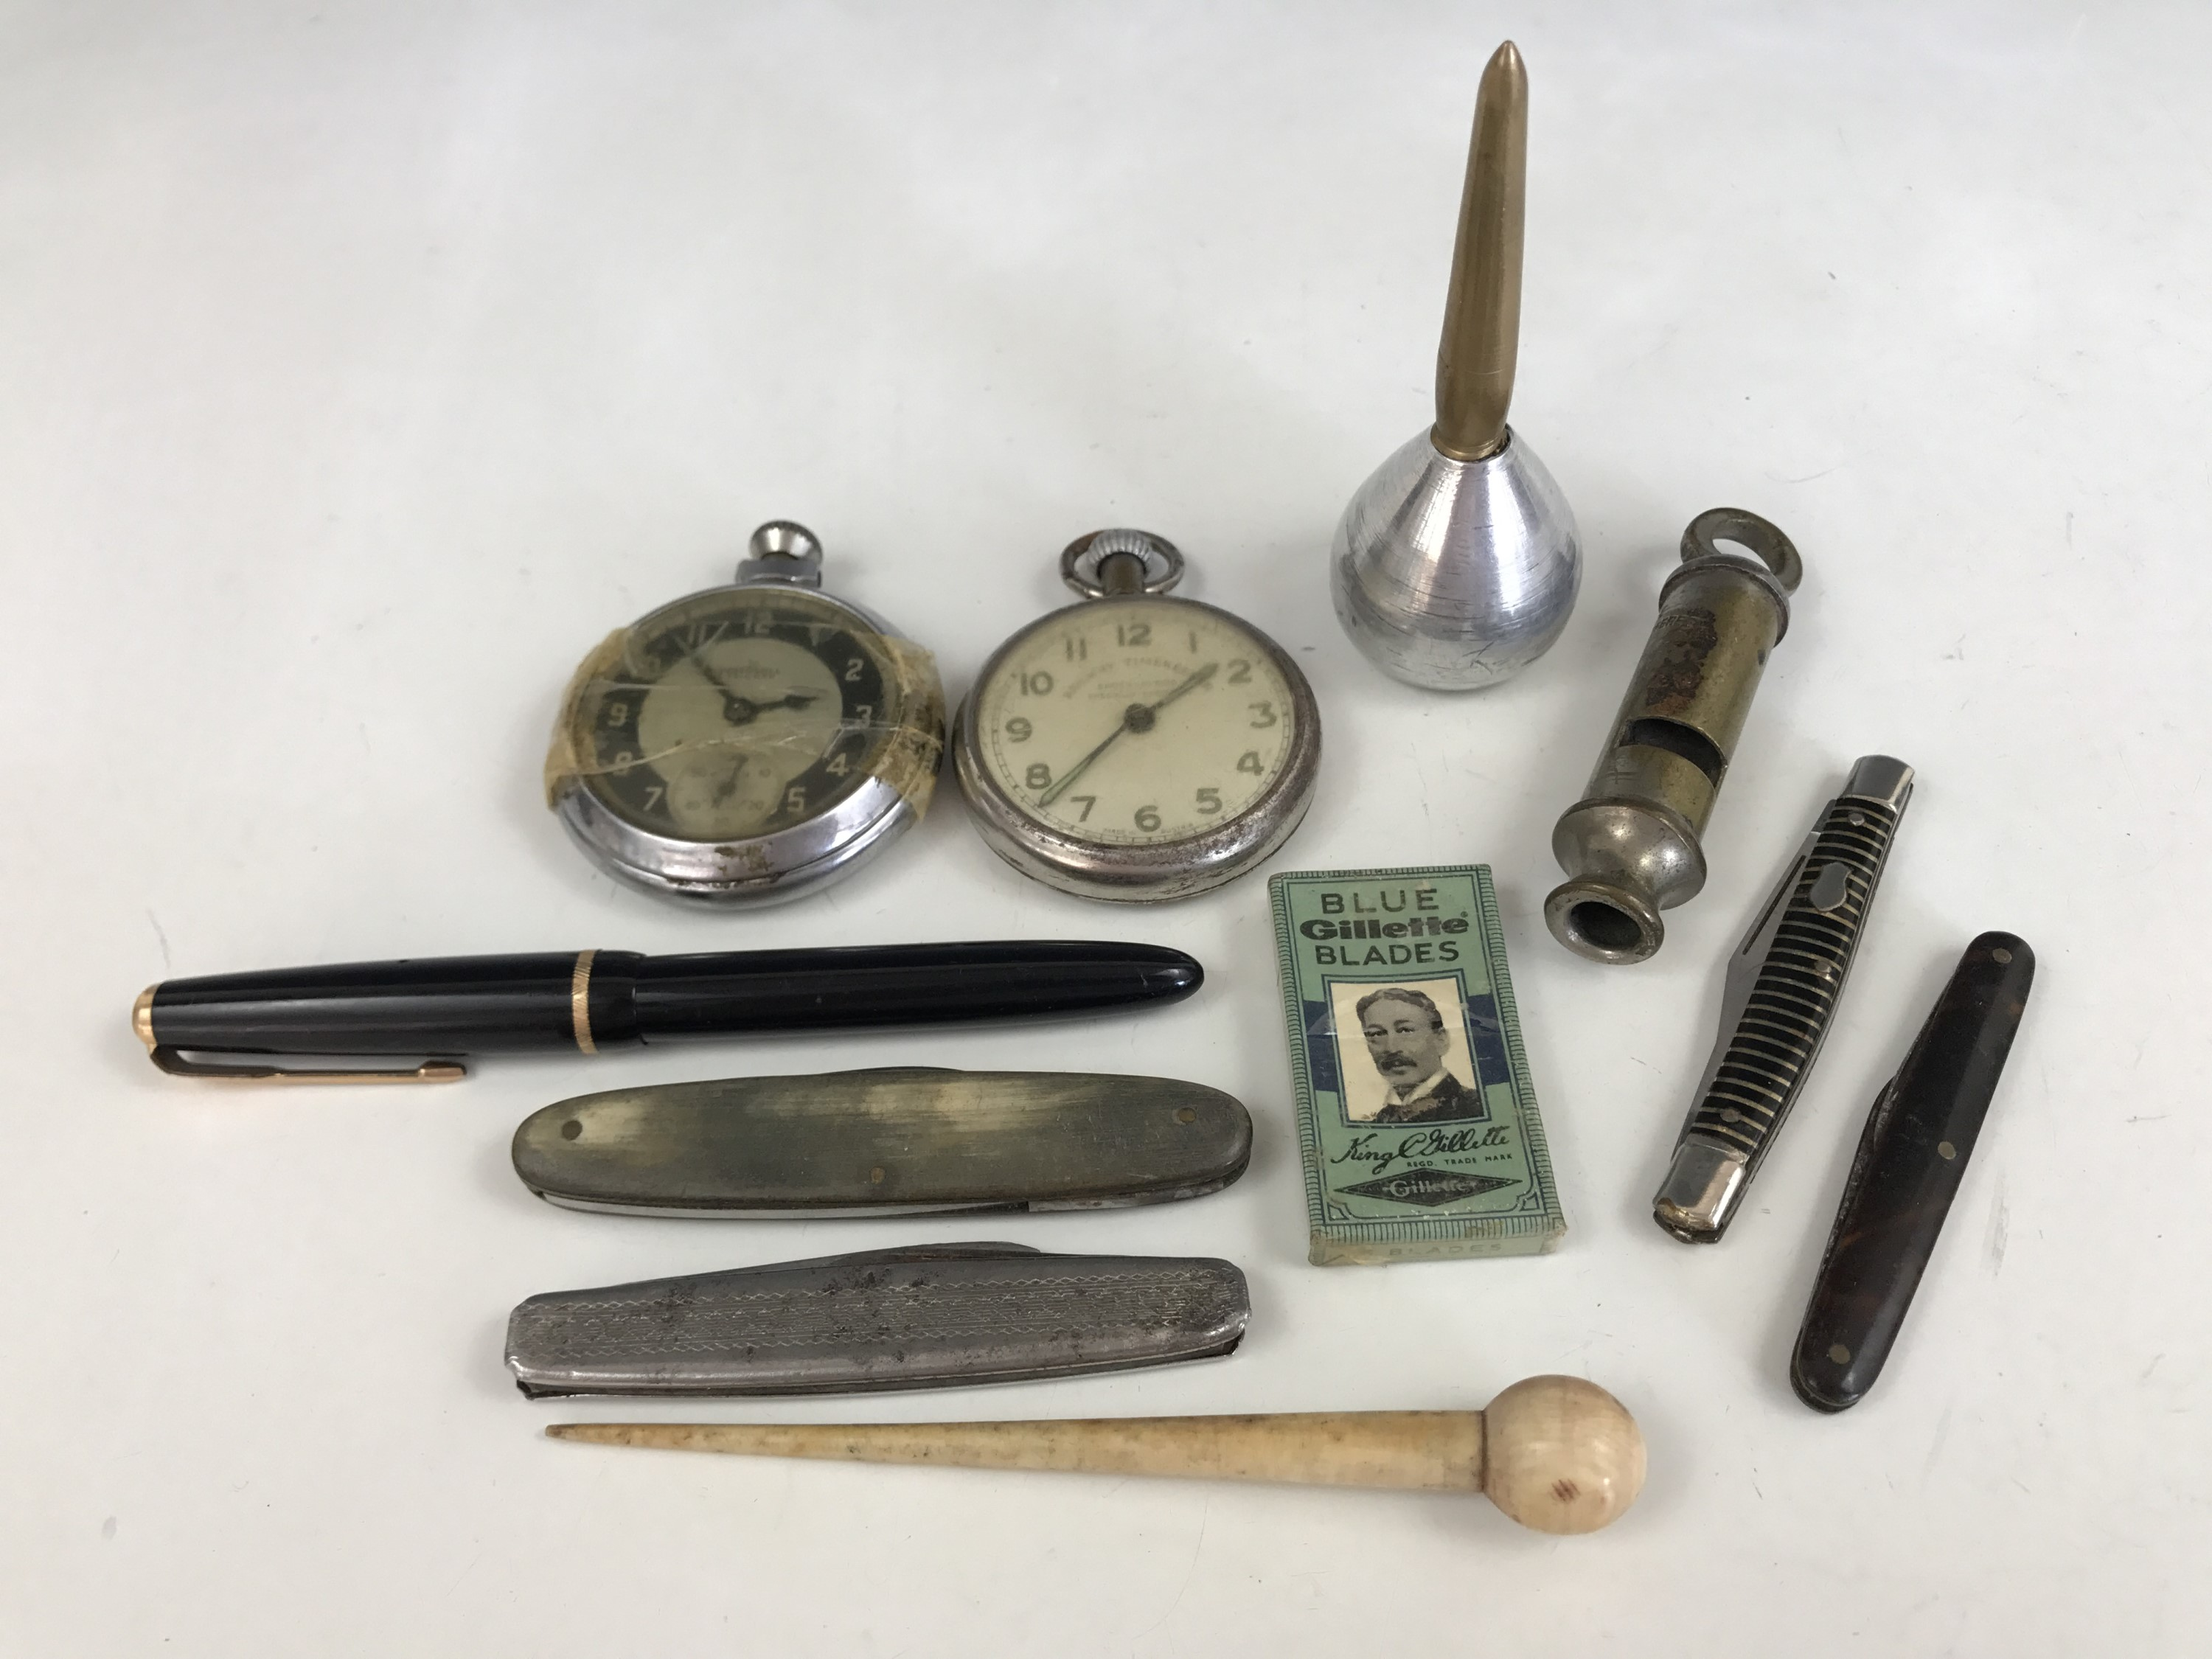 Lot 18 - Collectors' items including four vintage pen knives, a Railway Timekeeper shock-proof pocket